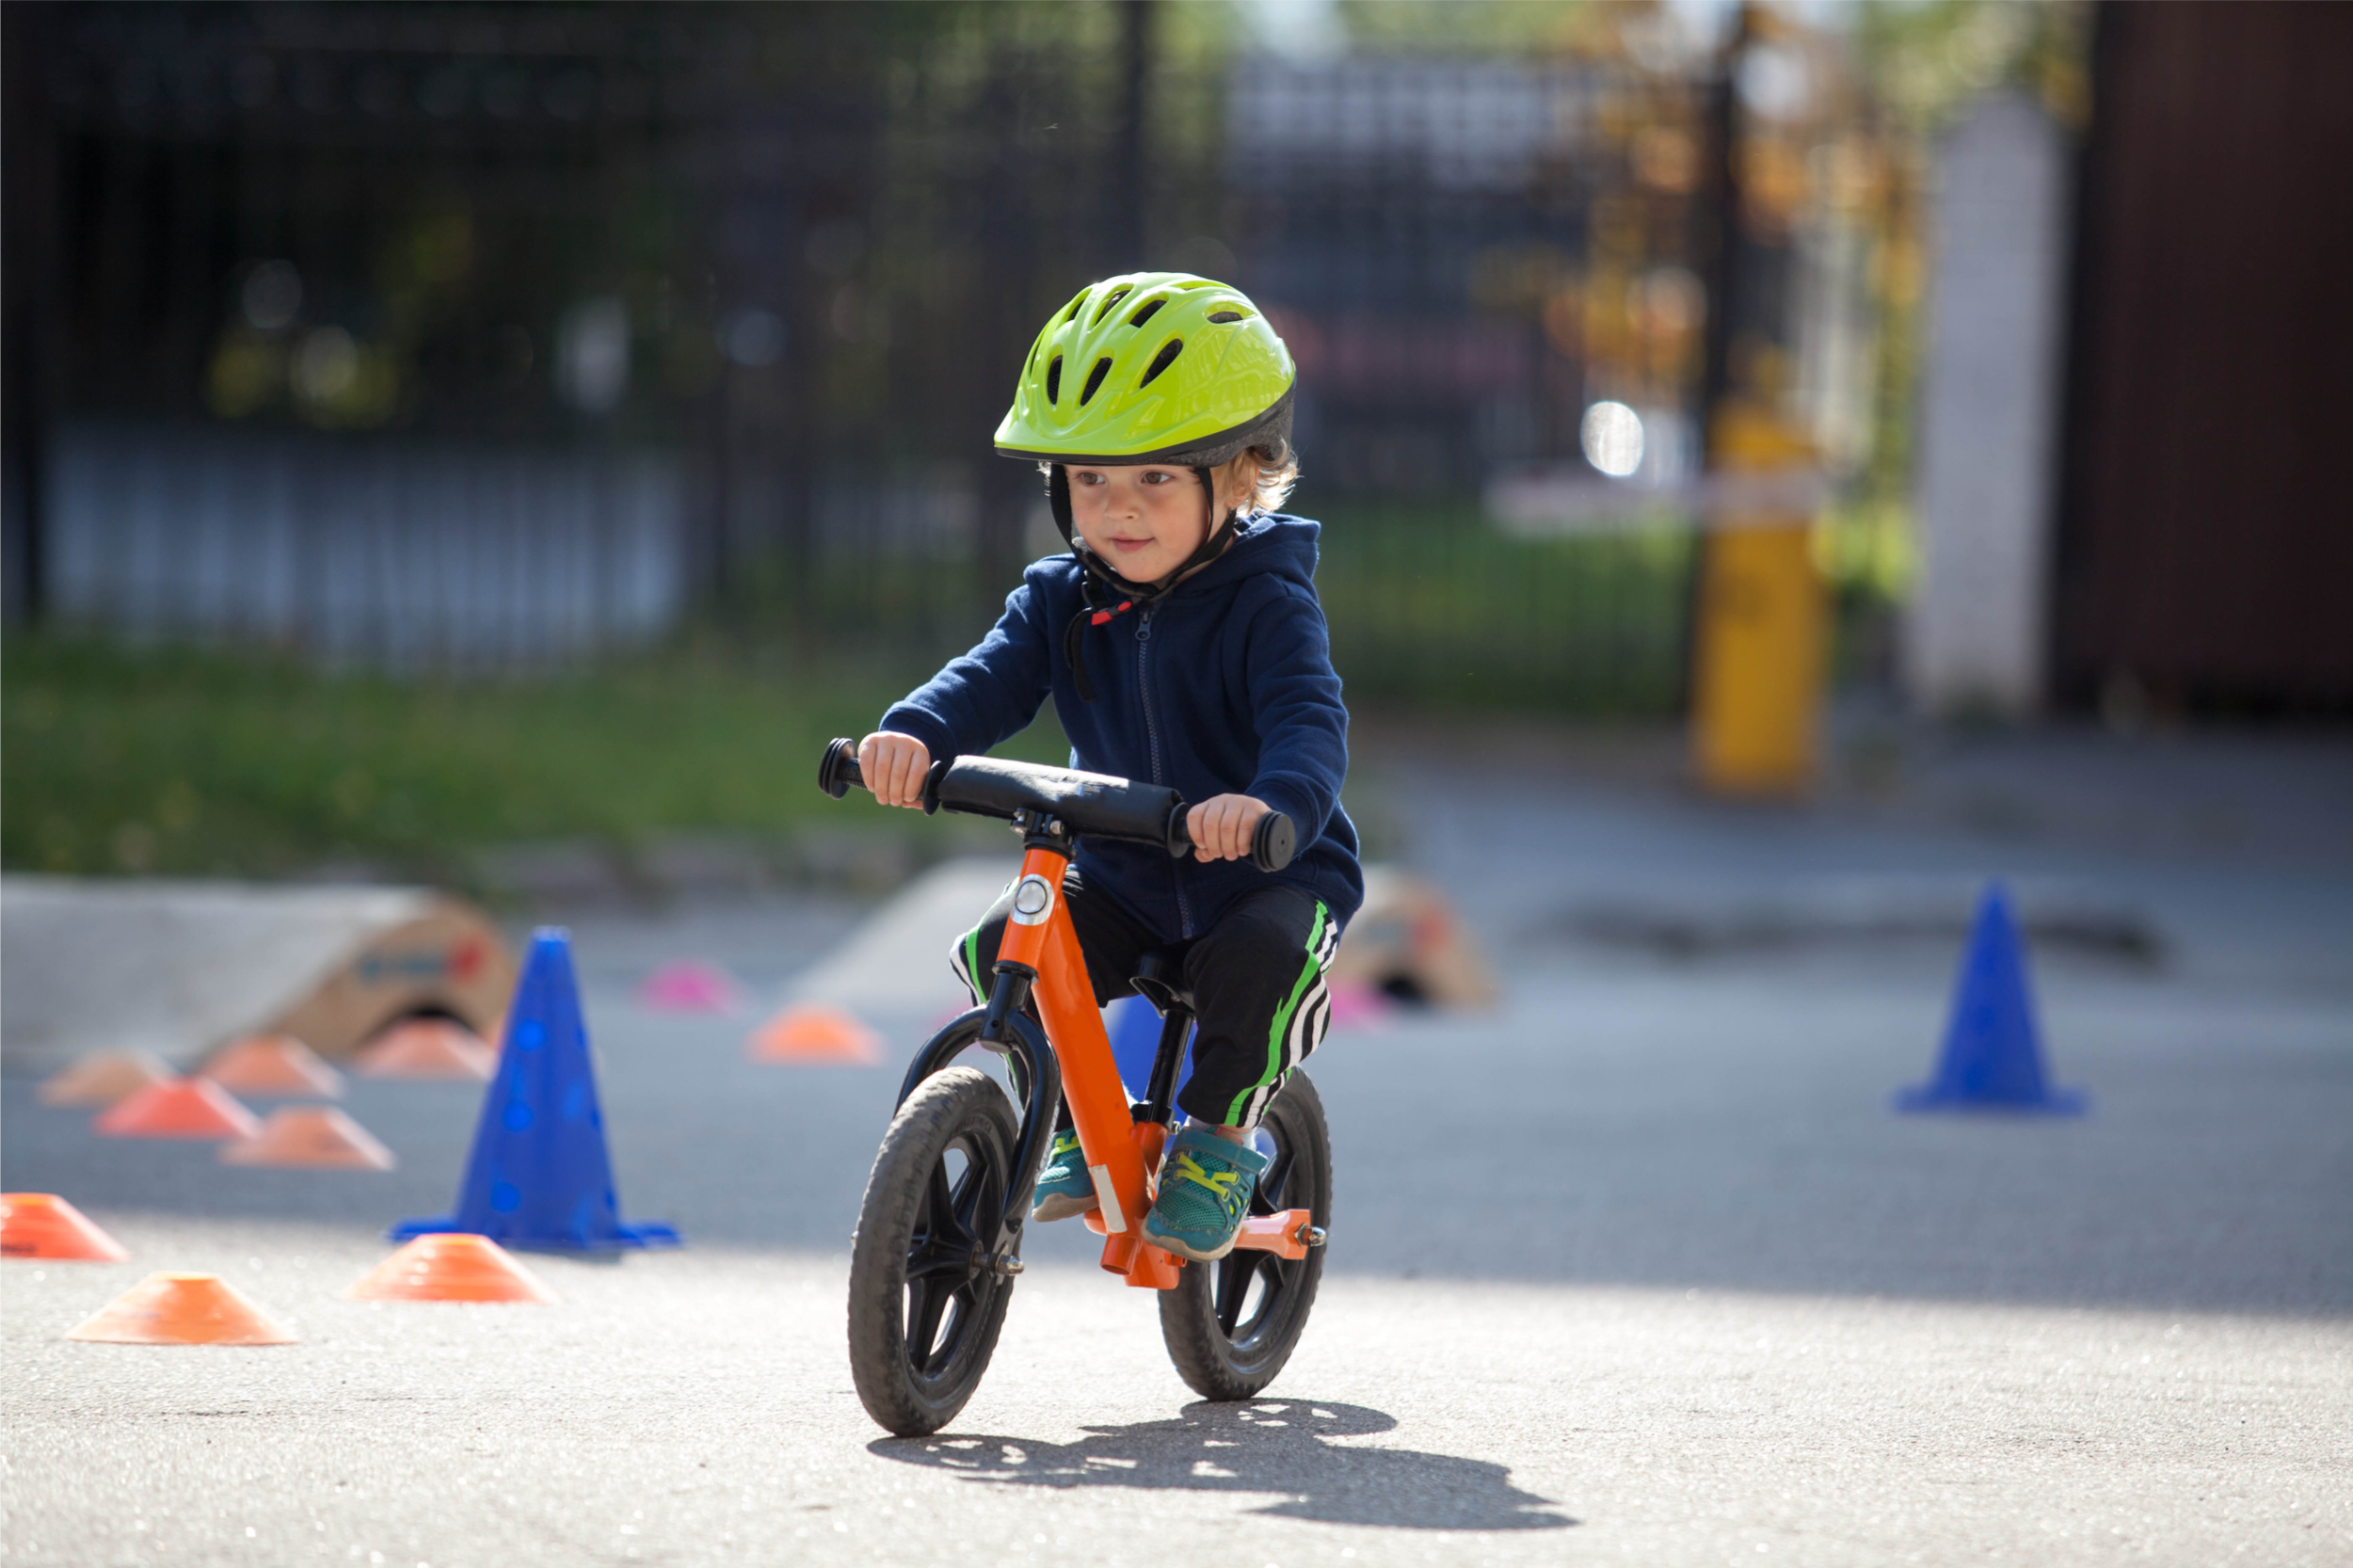 Cycling Education for All Abilities | Learn 2 Ride Lessons Utah | CycleAbility